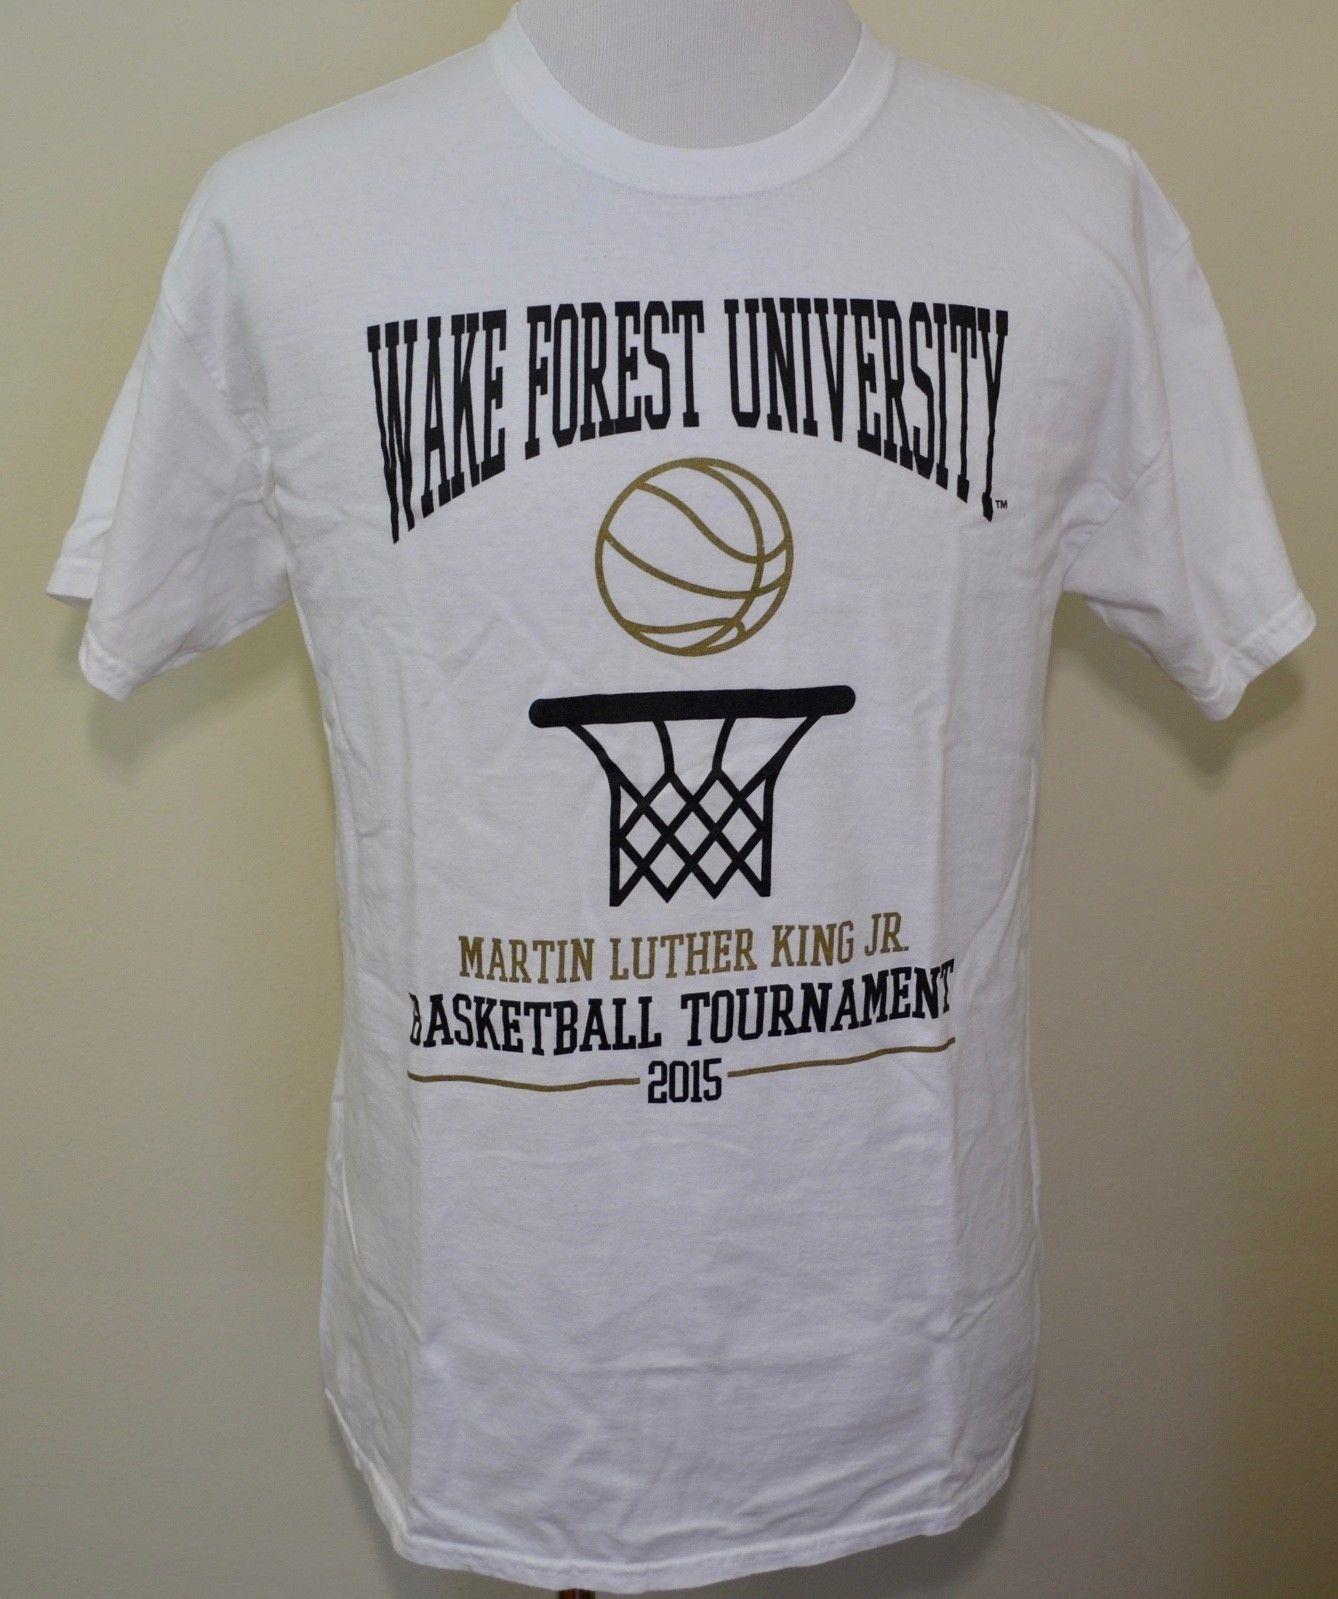 5a8d1bab6 Wake Forest Demon Deacons T Shirt White Large MLK Jr. Basketball 2015 Funny  Unisex Casual The Coolest T Shirts T Shirt Shirt Designs From  Themusicstore, ...